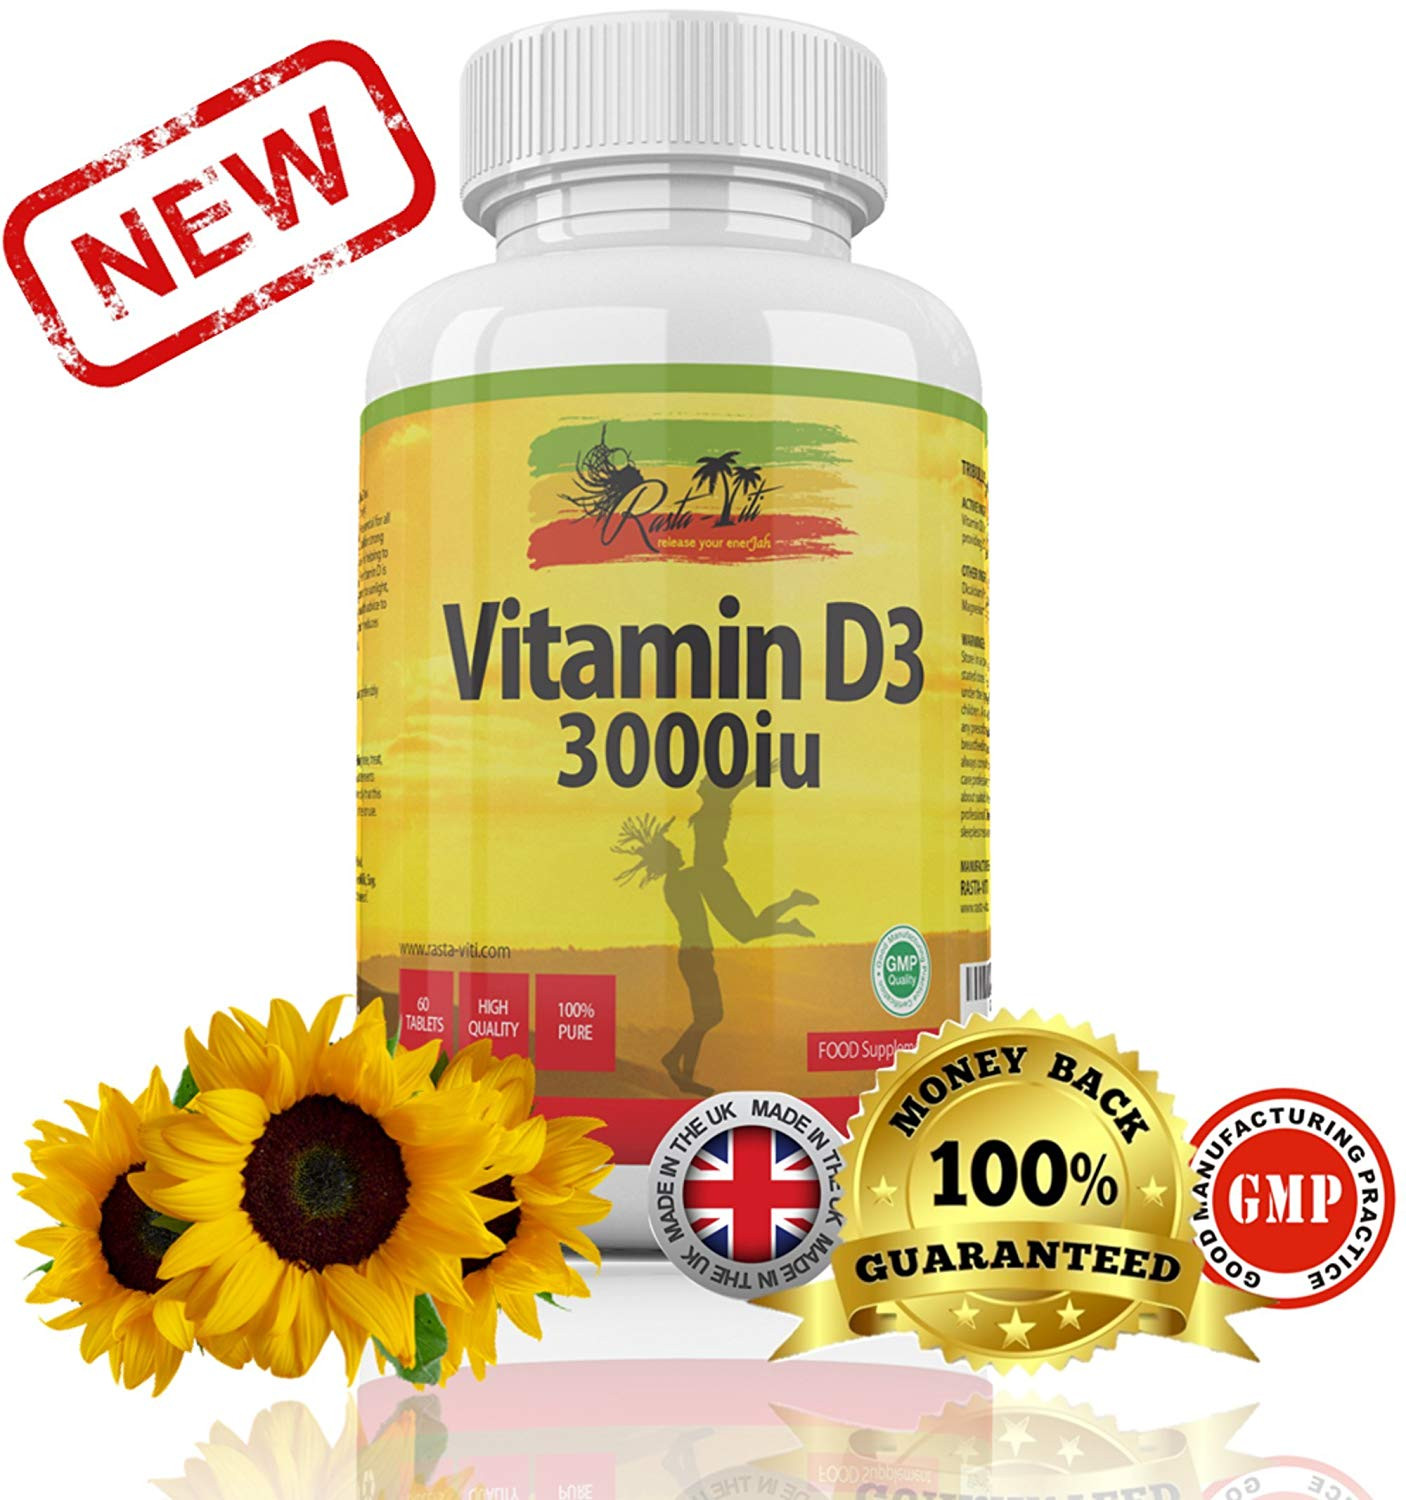 Vitamin D Tablets by Rasta Viti High Strength Vitamin D3 3000IU Pills for Ve arians & Vegans Max Absorption Cholecalciferol Formula Supplements for